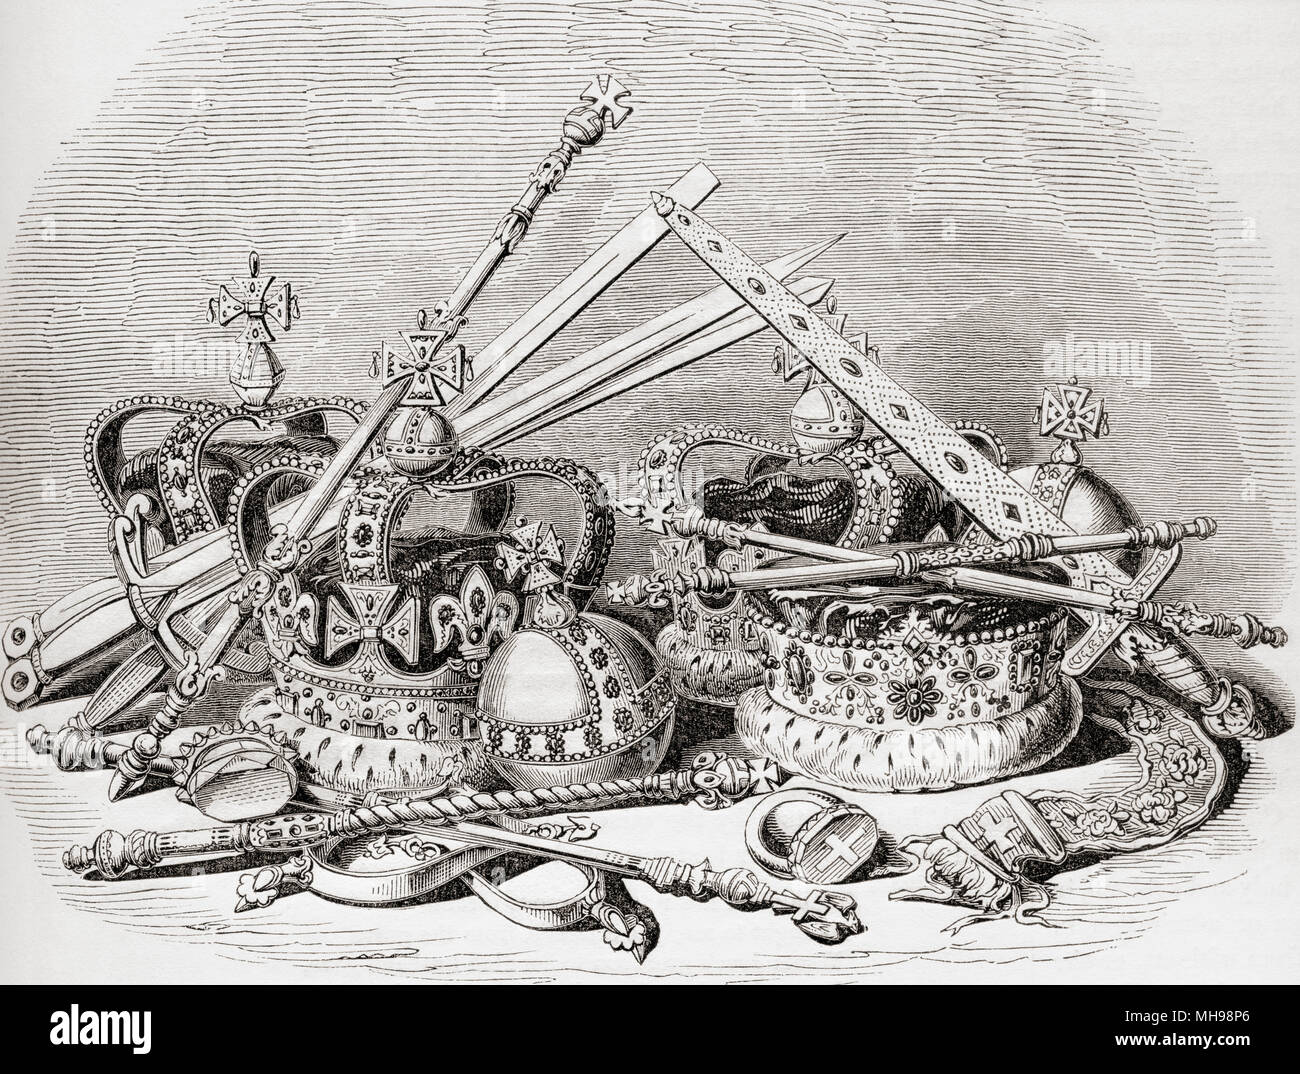 English regalia.  From Old England: A Pictorial Museum, published 1847. - Stock Image